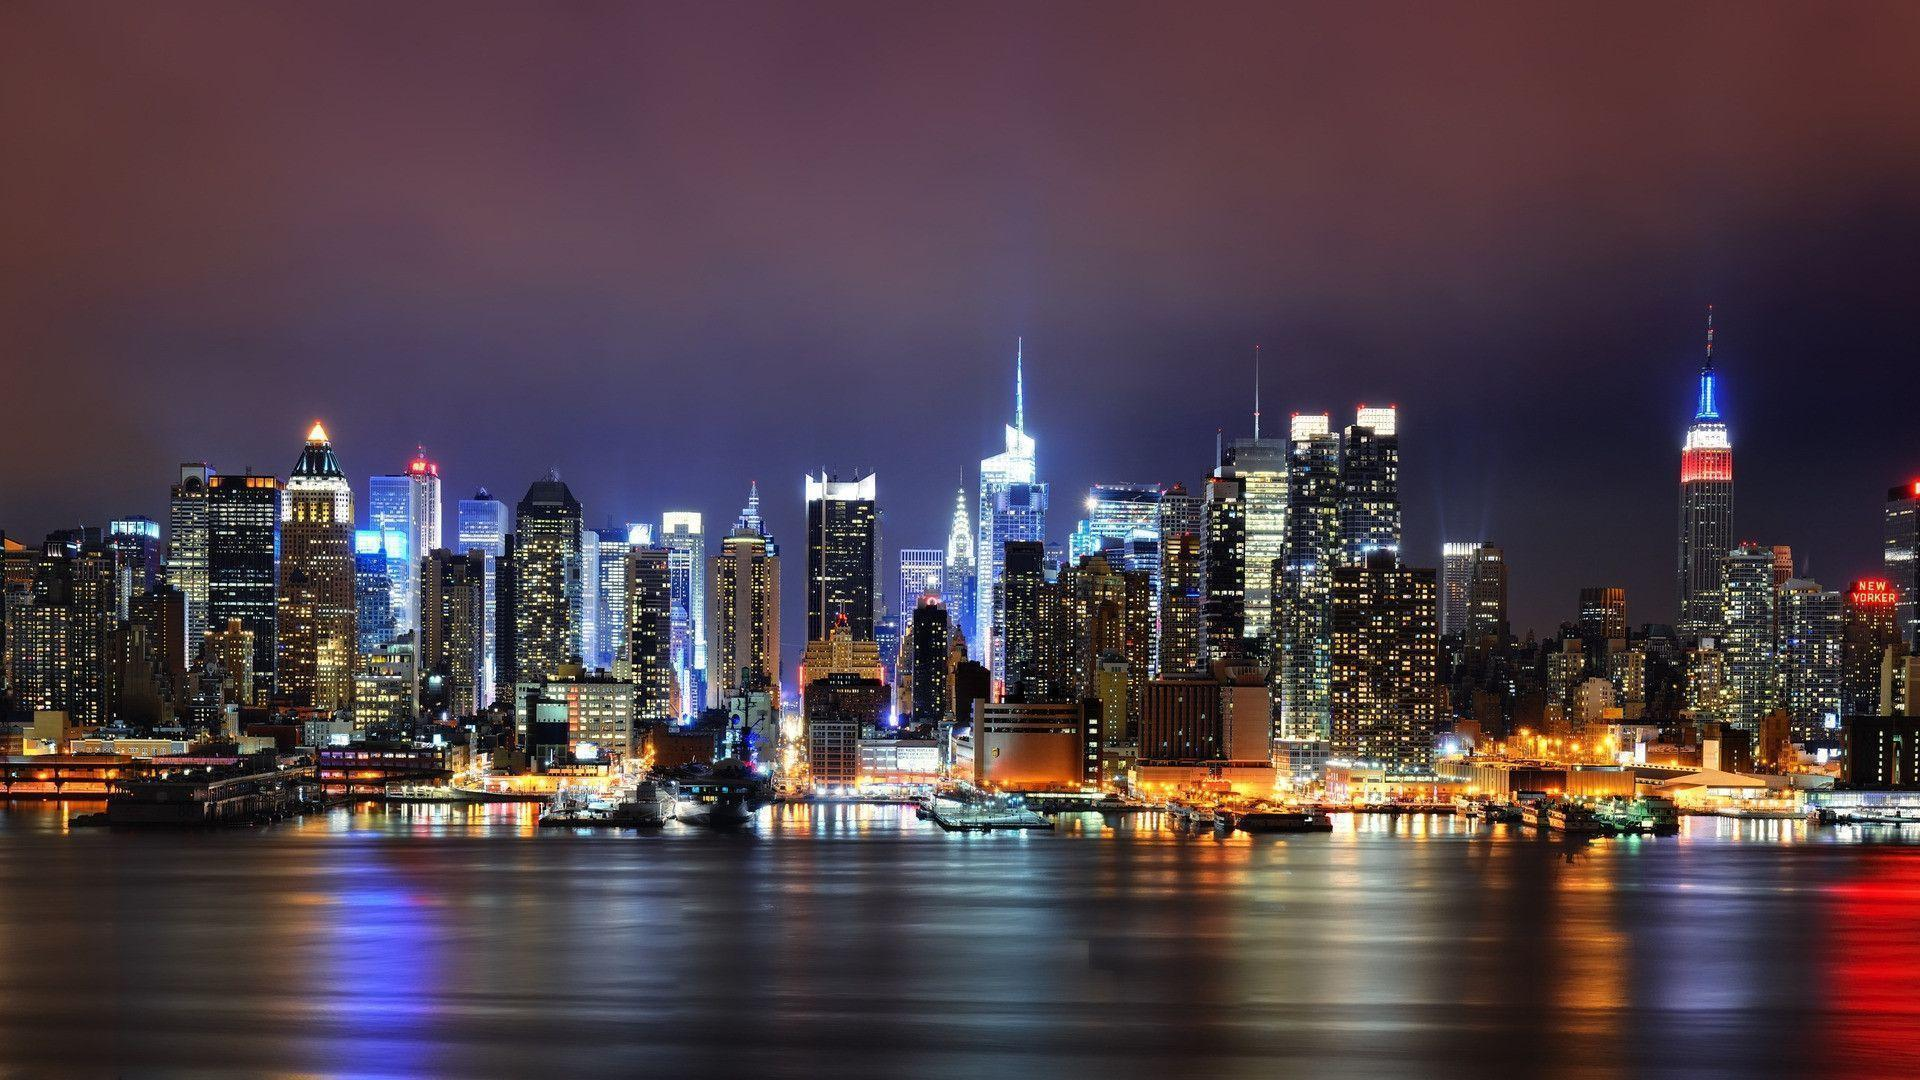 wallpapers of new york city, wallpapers new york city